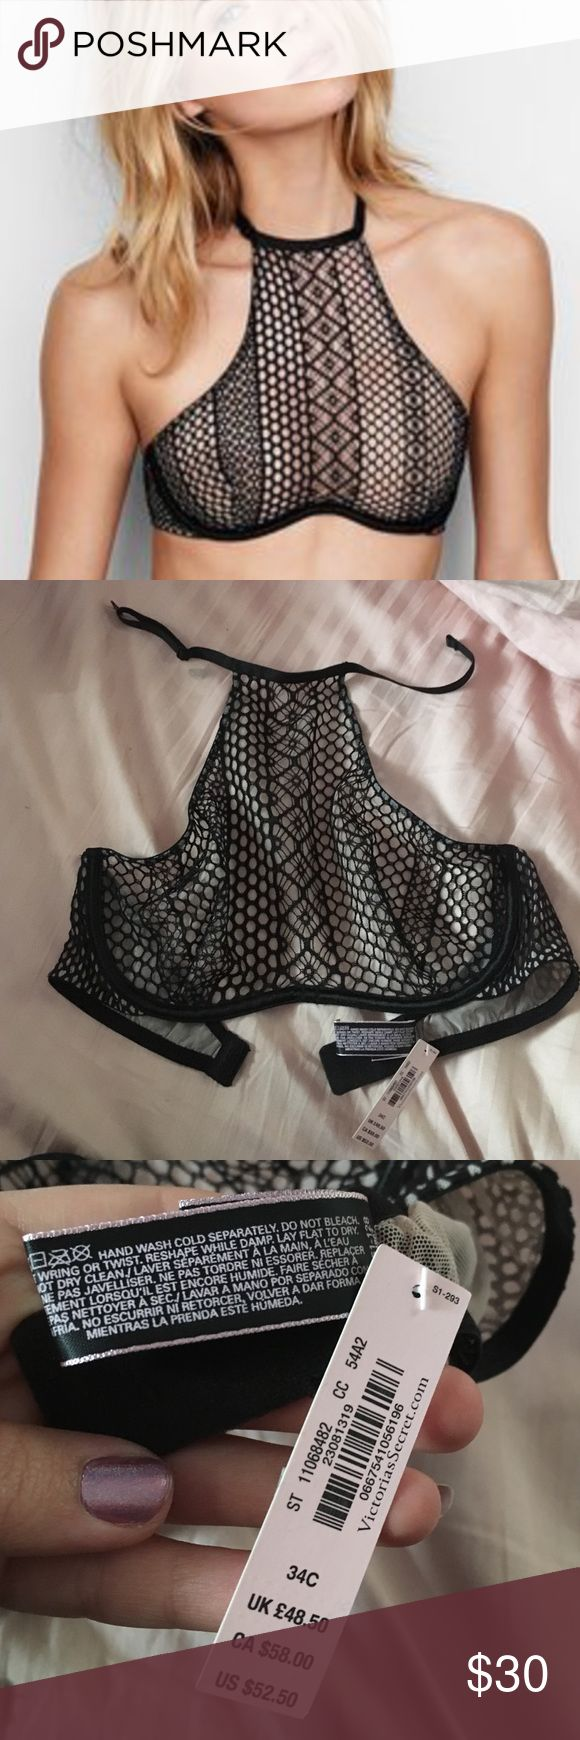 NWT Very Sexy Unlined Bra 34C, NWT, perfect condition Very Sexy After Dark Unlined High-Neck bra from Victoria's Secret! This is SOLD OUT in stores!  Victoria's Secret Intimates & Sleepwear Bras